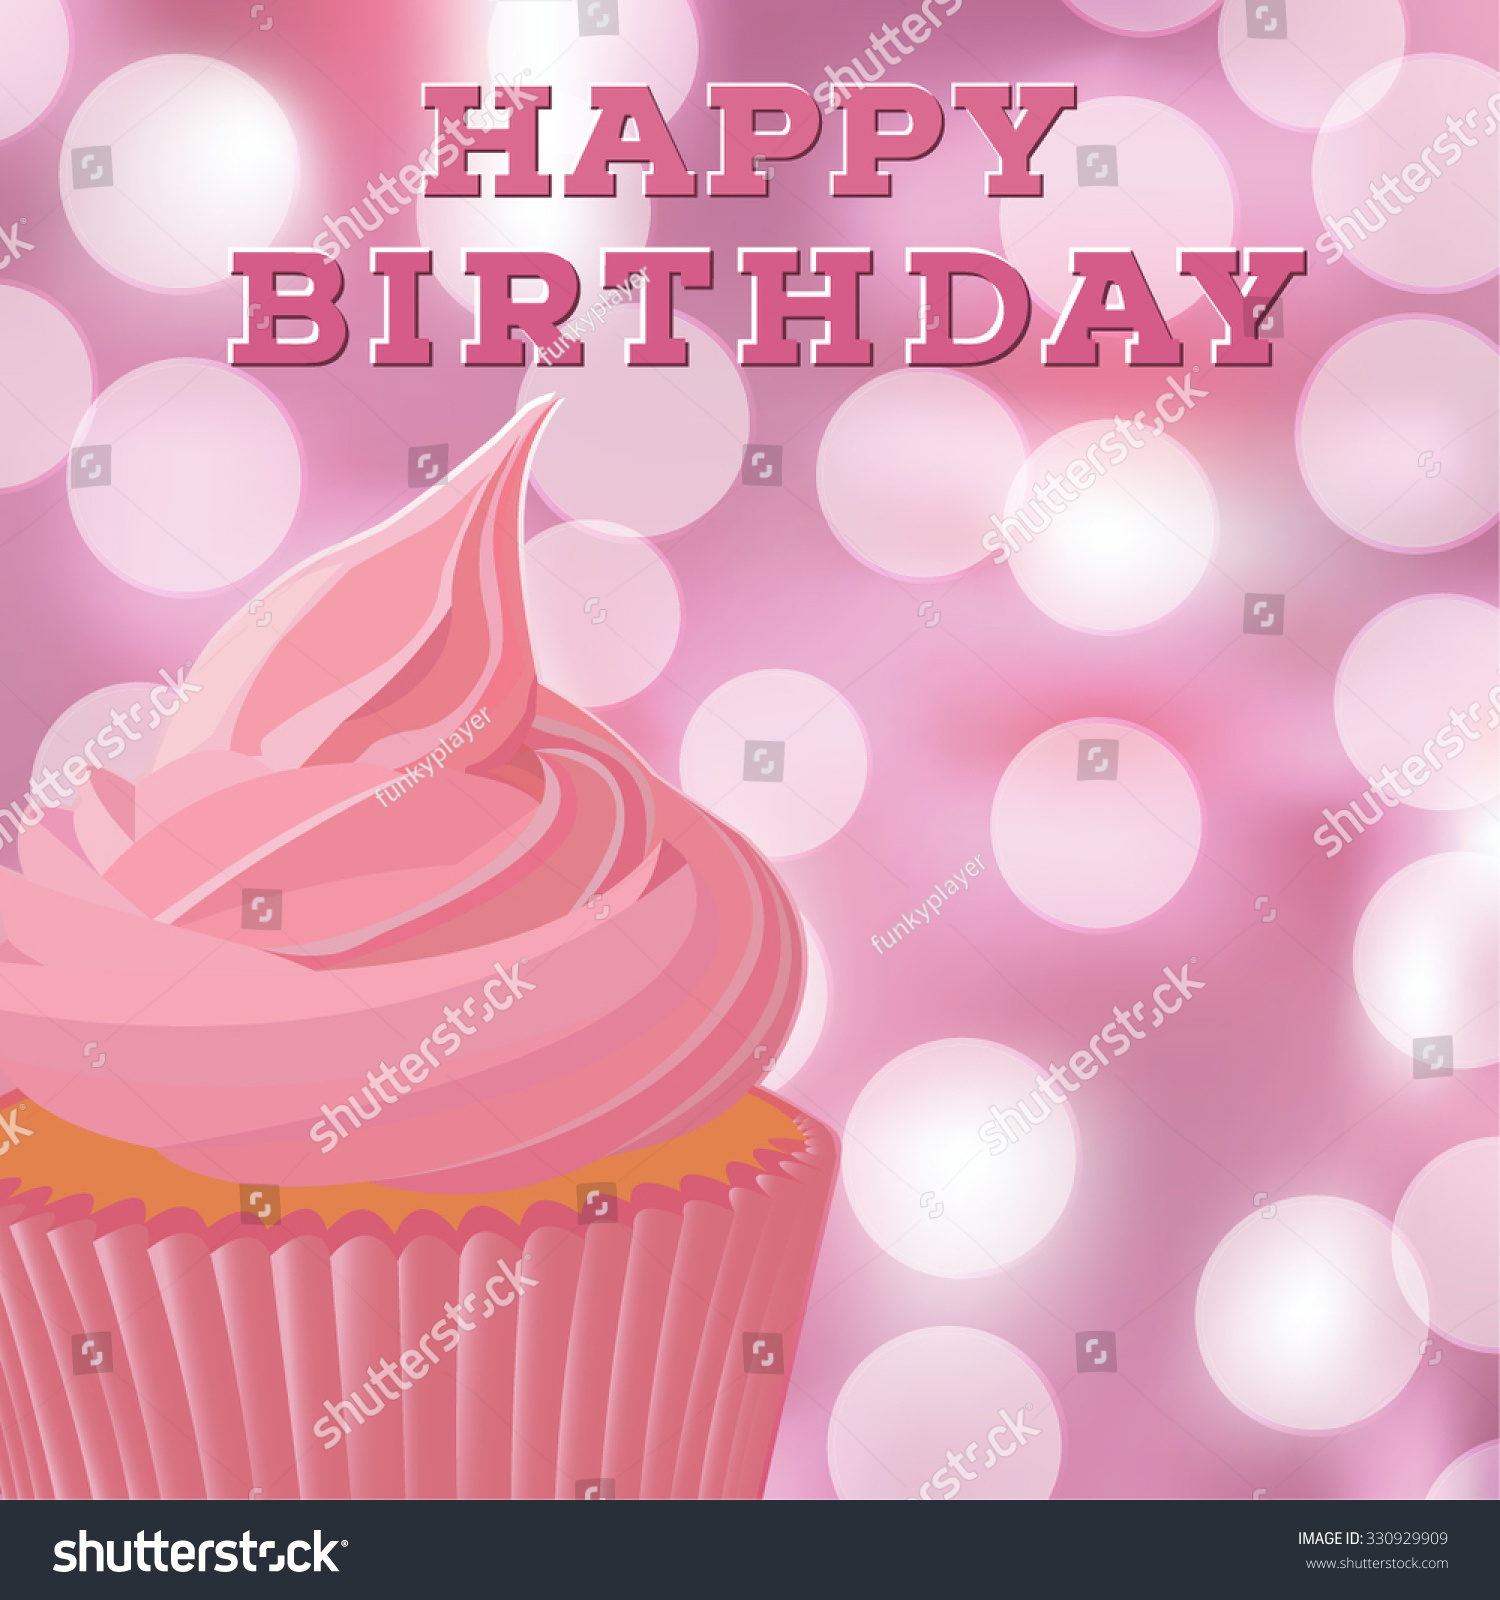 Happy Birthday Greeting Card Template Pink Stock Vector Royalty